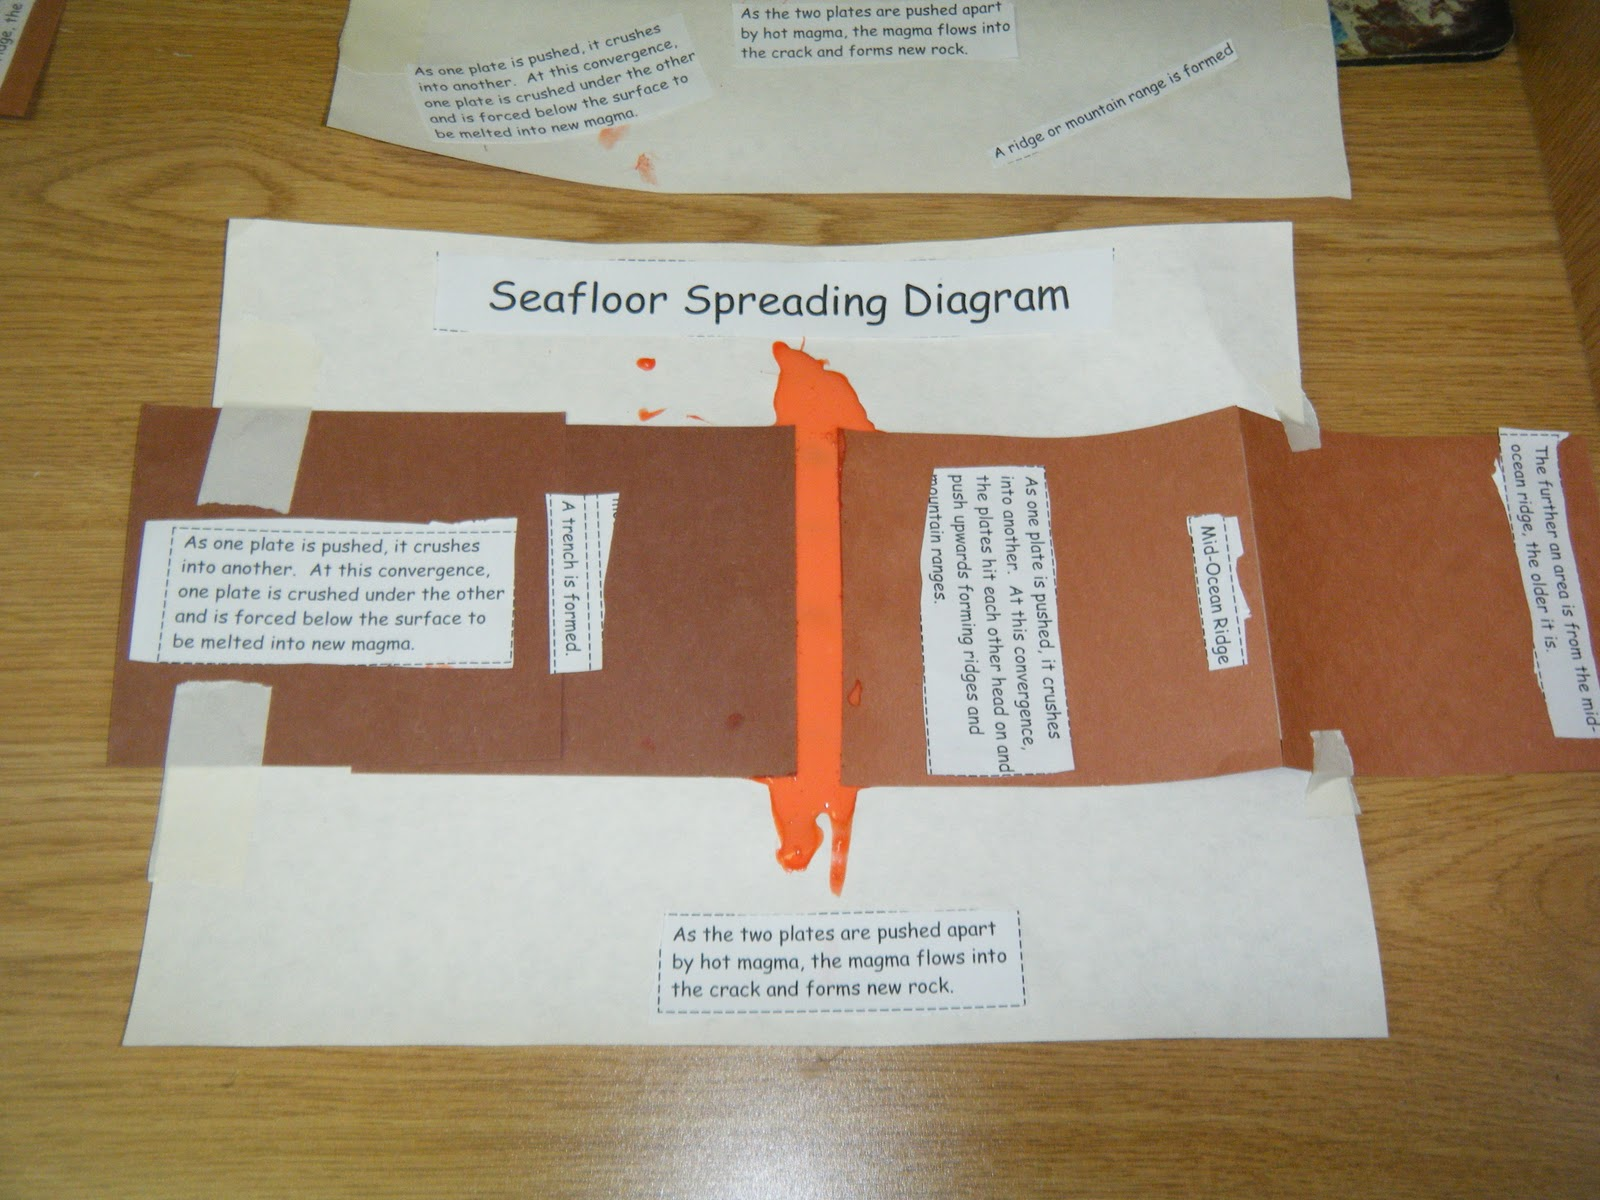 Spencespace Spreading The Word About Seafloor Spreading